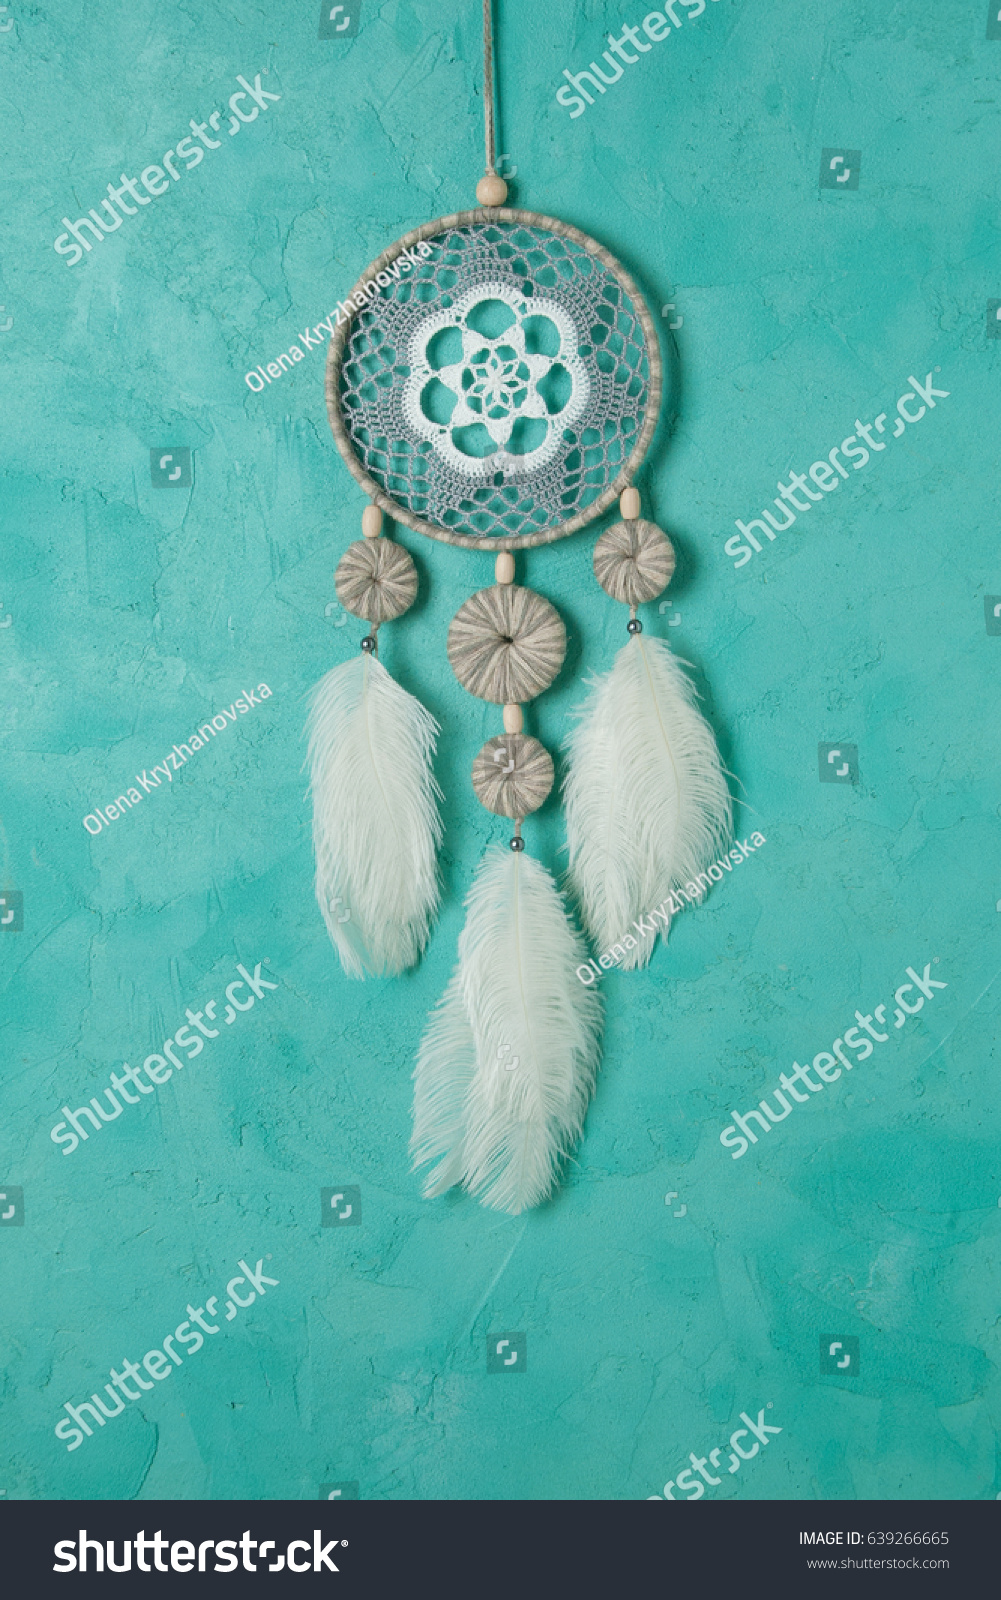 White gray dream catcher close up on aquamarine textured background. Copy space for text #639266665